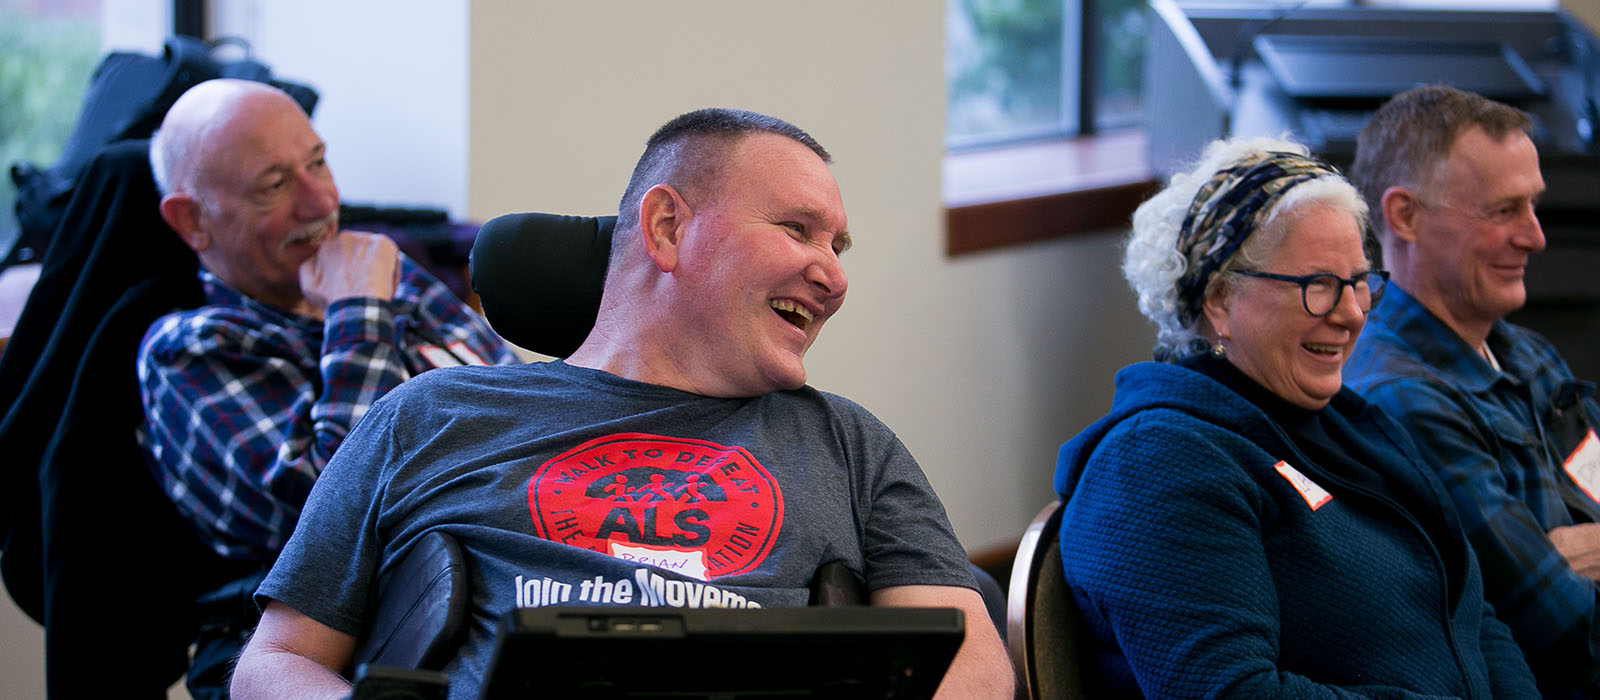 Support ALS Equipment Loan Program